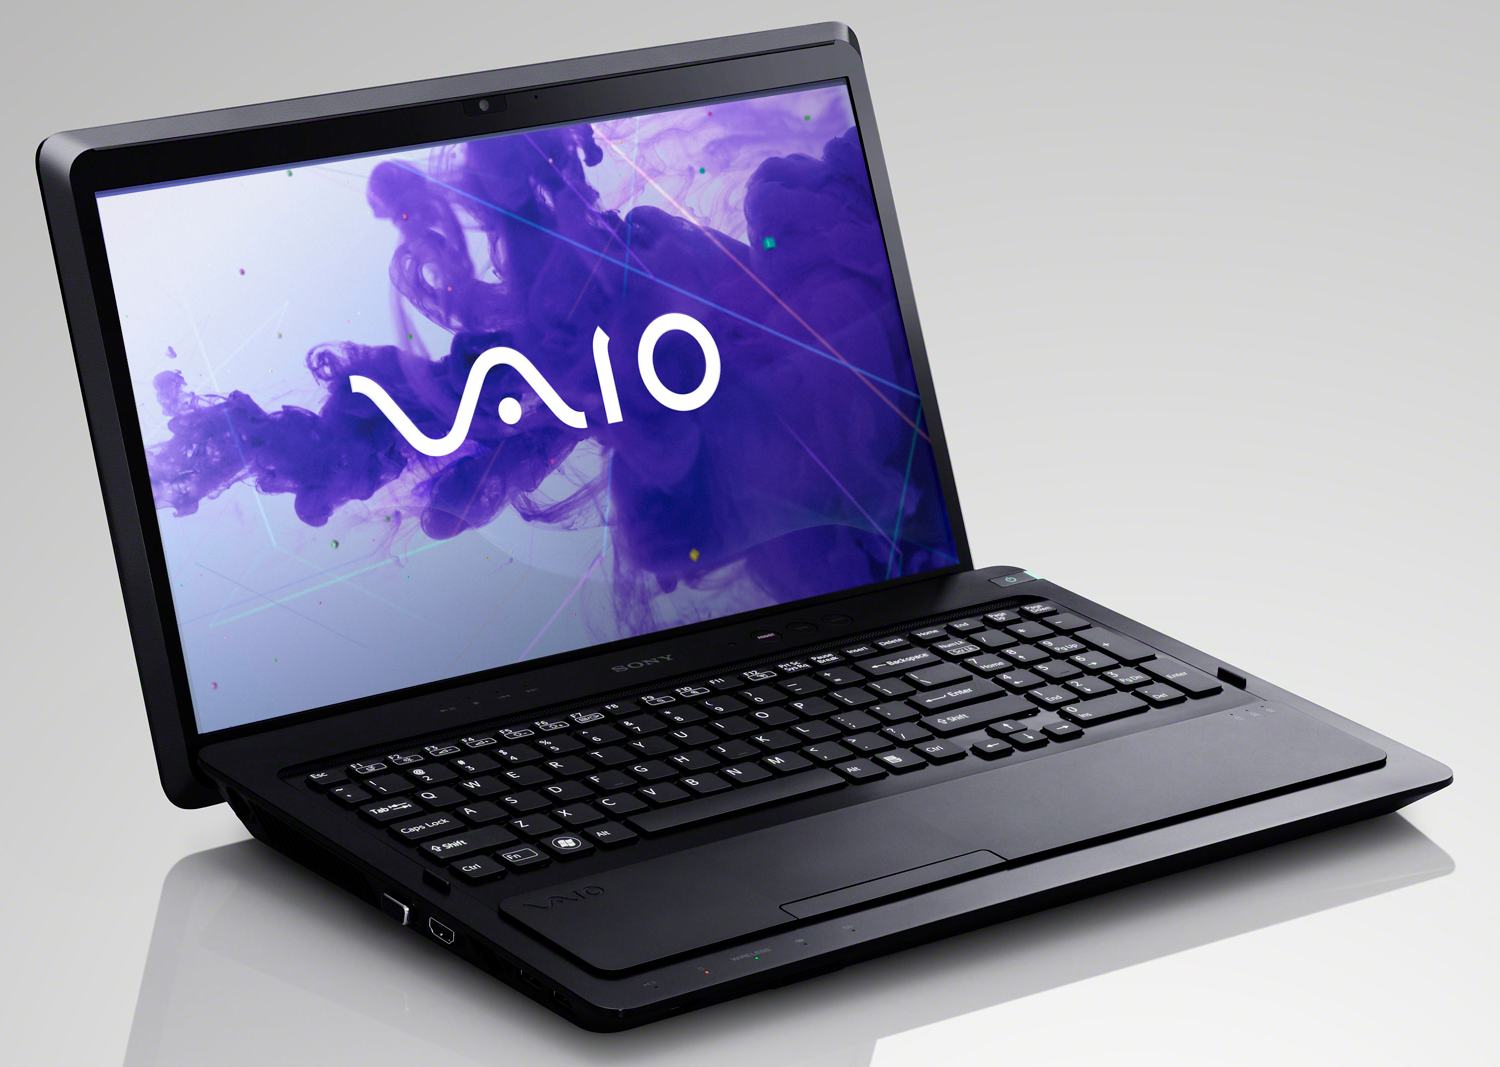 Sony Vaio VPCF2190X Shared Library Treiber Windows 10